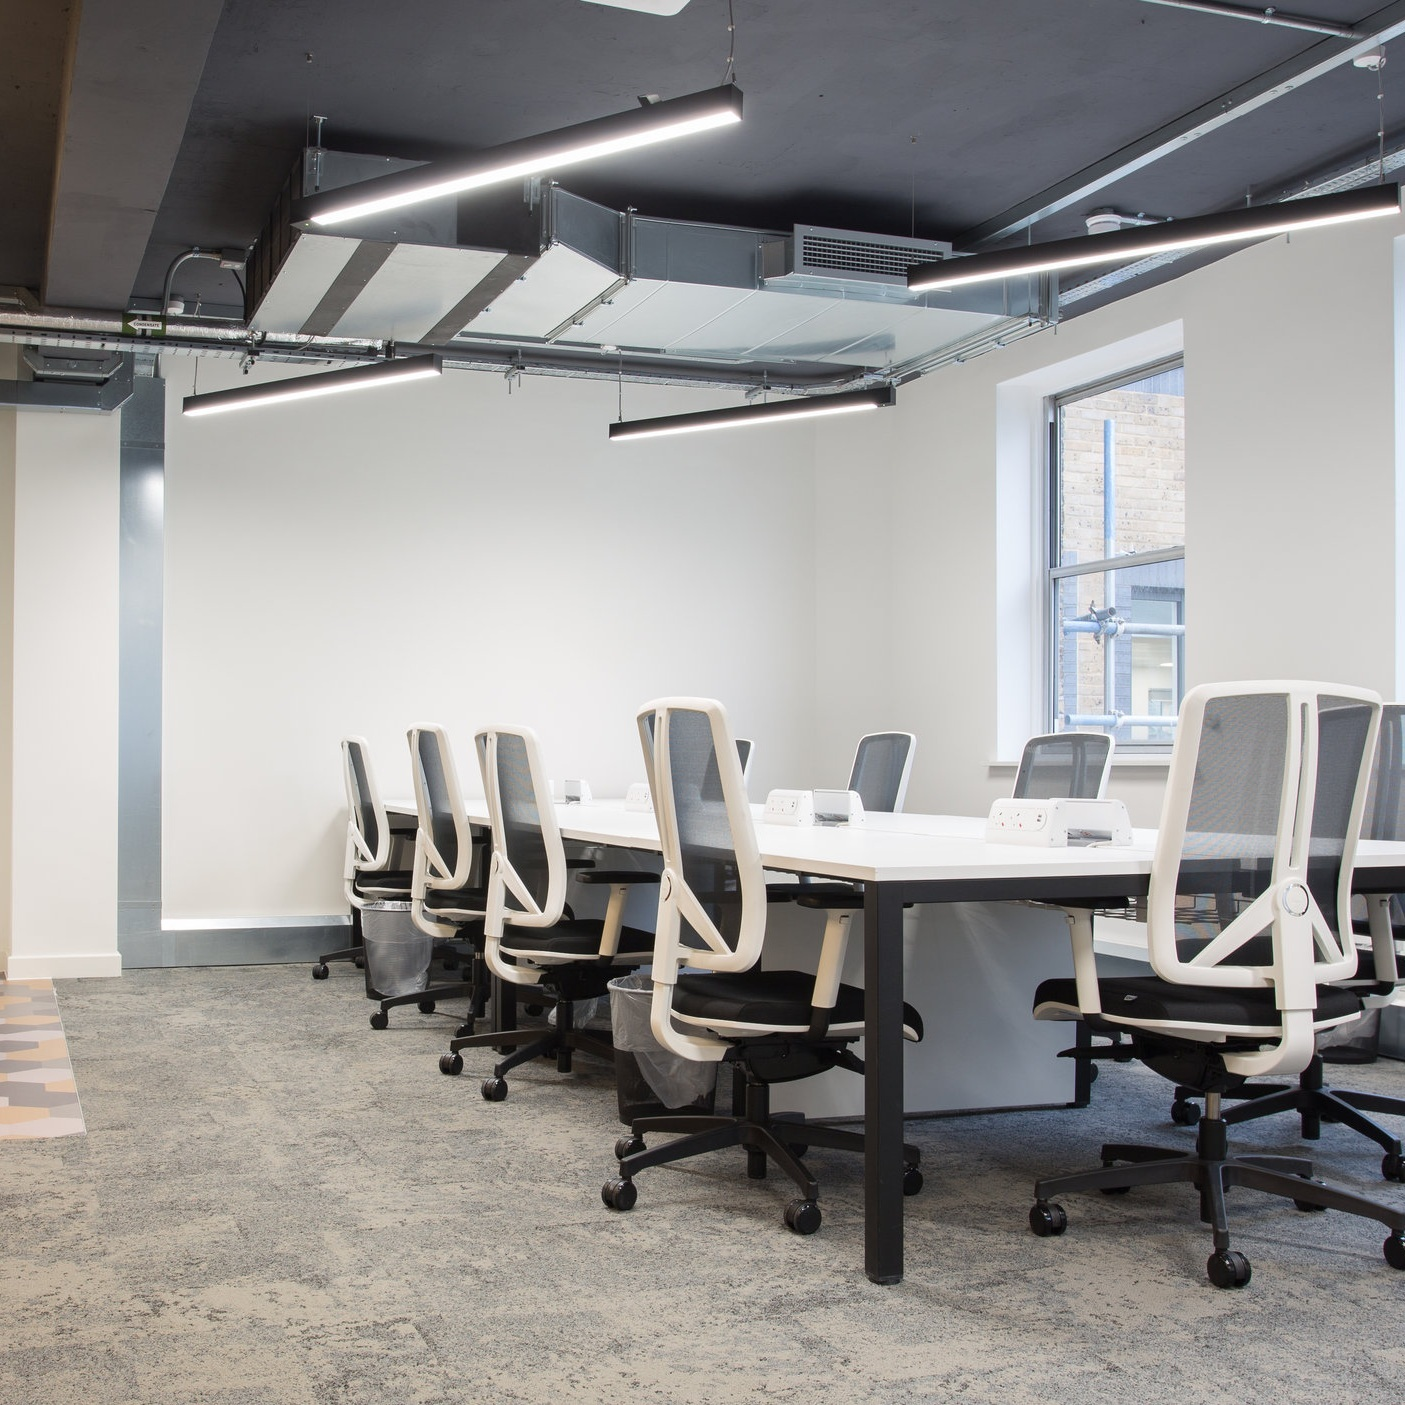 Versatile - Thanks to its superb build quality, excellent performance, and high visual comfort it is a perfect linear LED lighting system for stimulating working environments and schemes looking to achieve LG7 compliance.